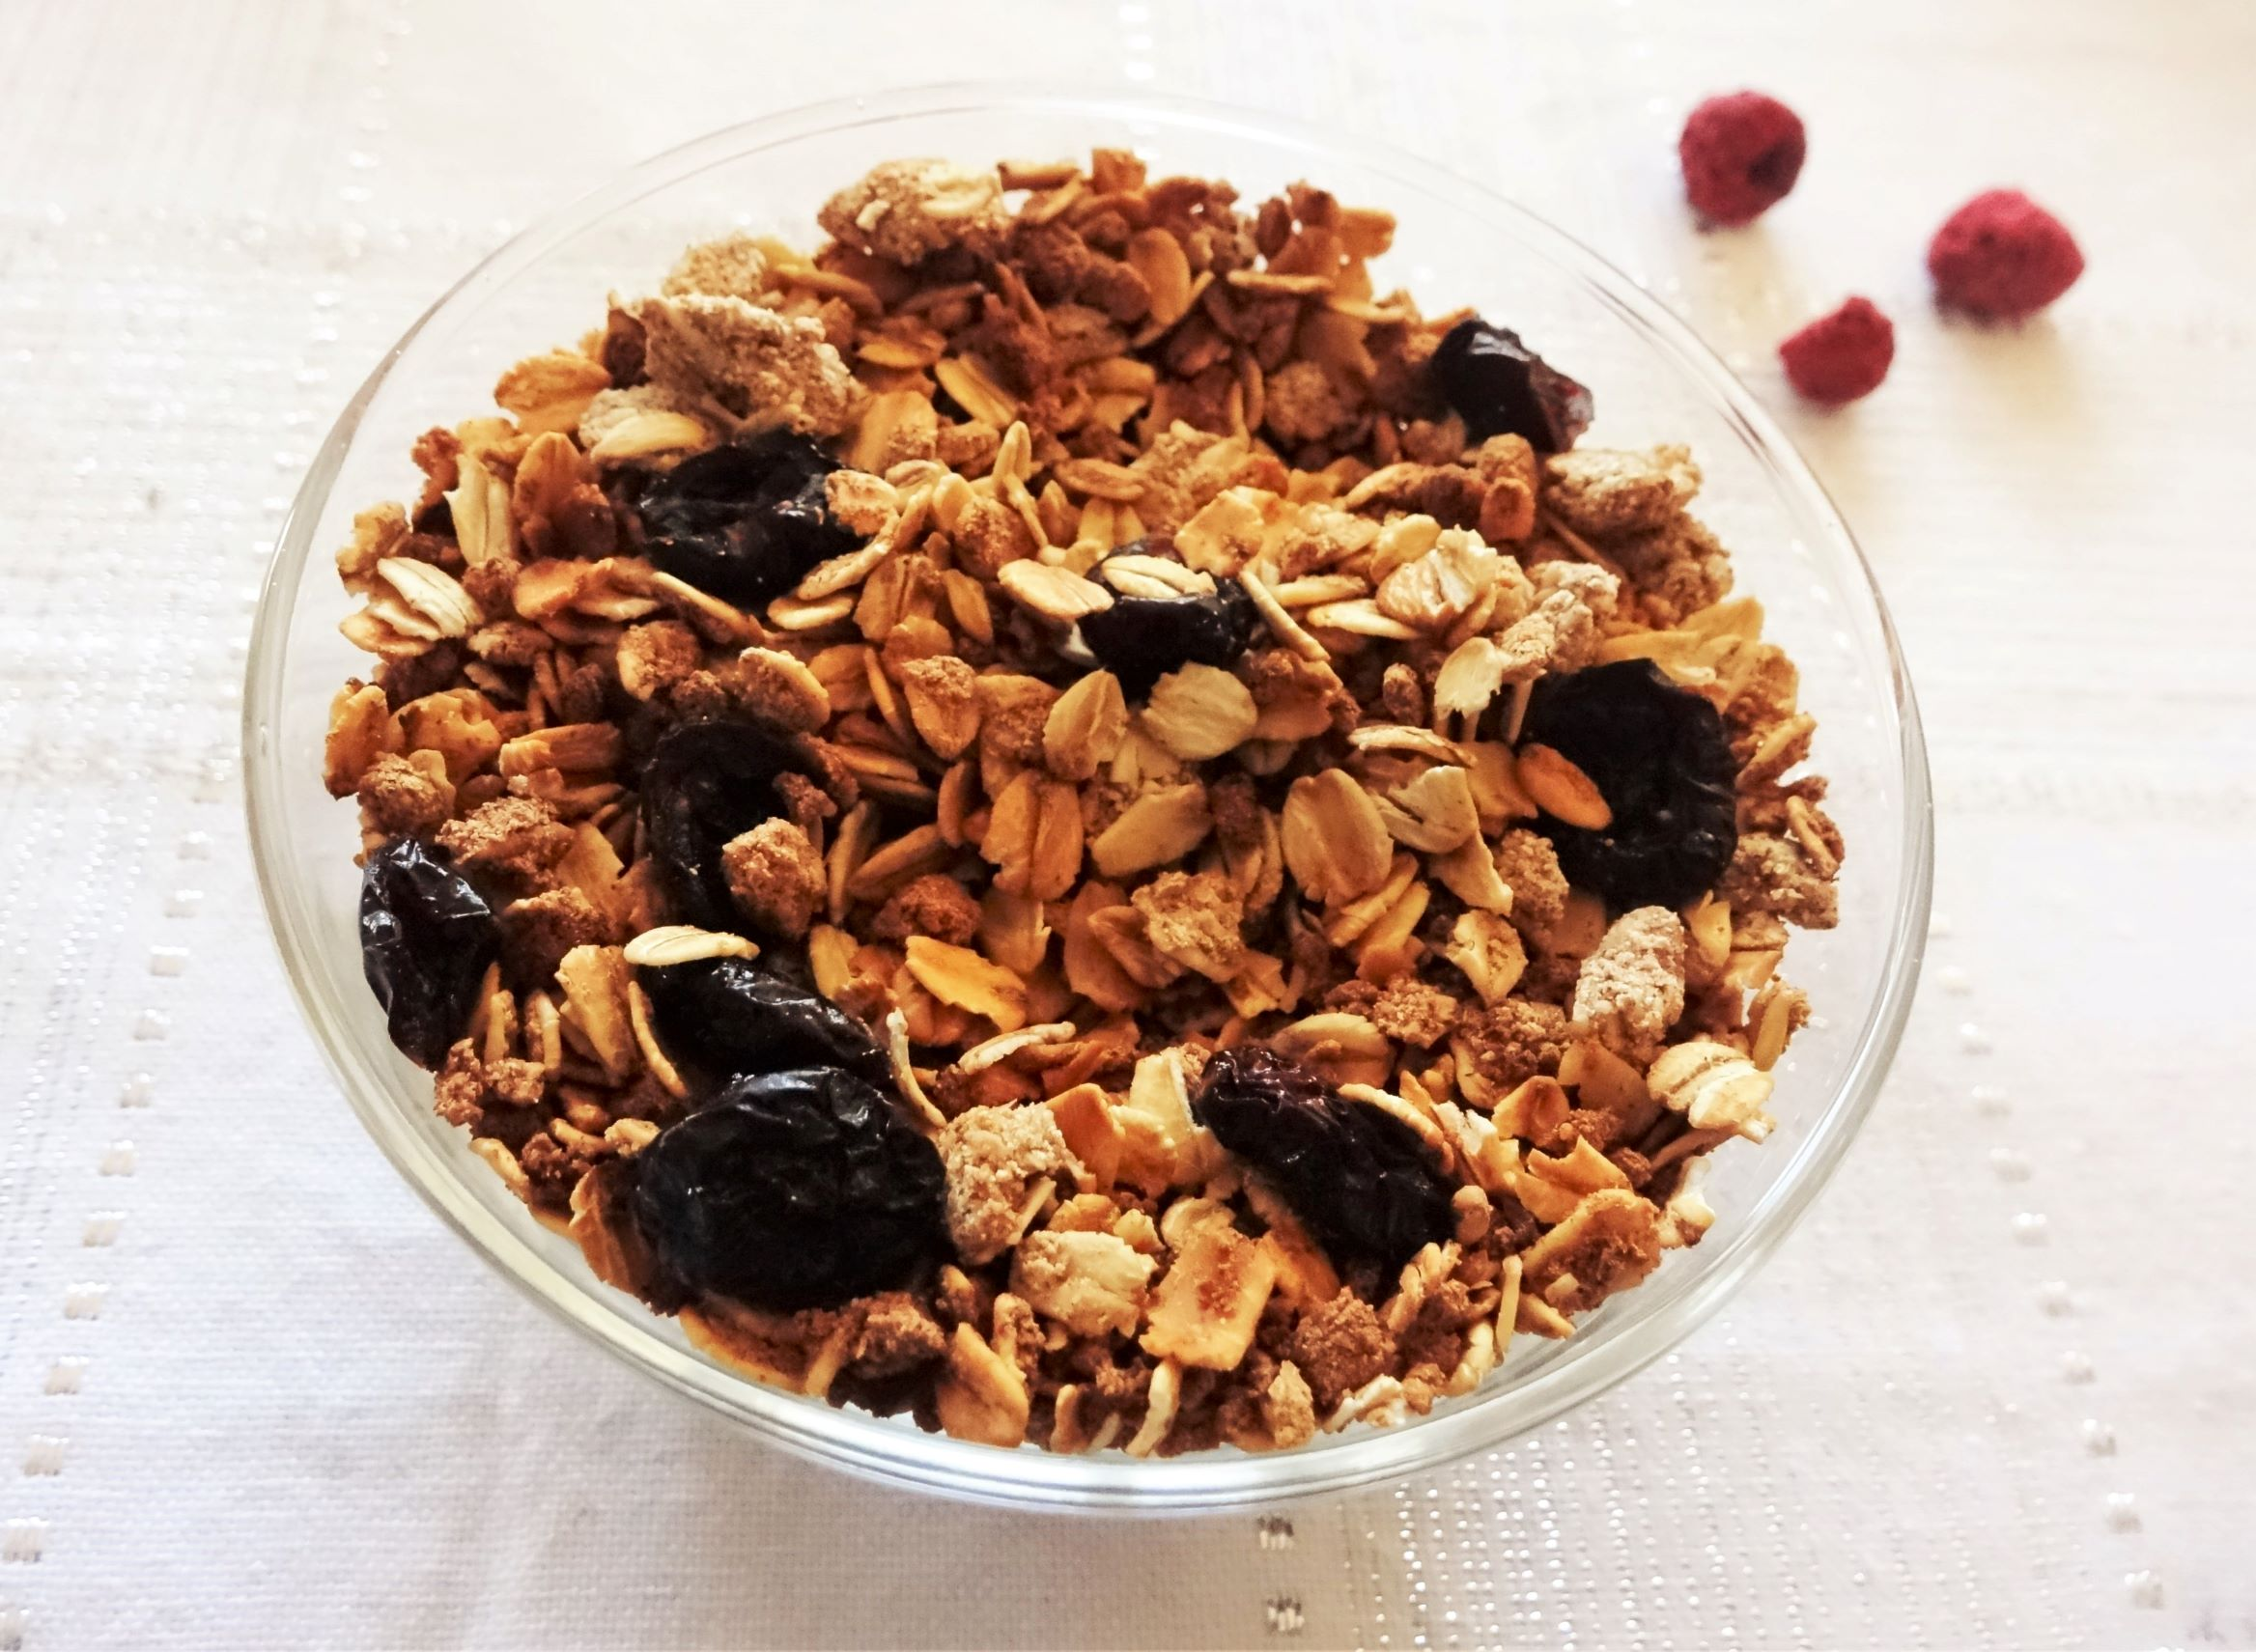 Easy Me Baked Granola: Tastes as good as top brands, but it's without sugar, added oils or gluten!